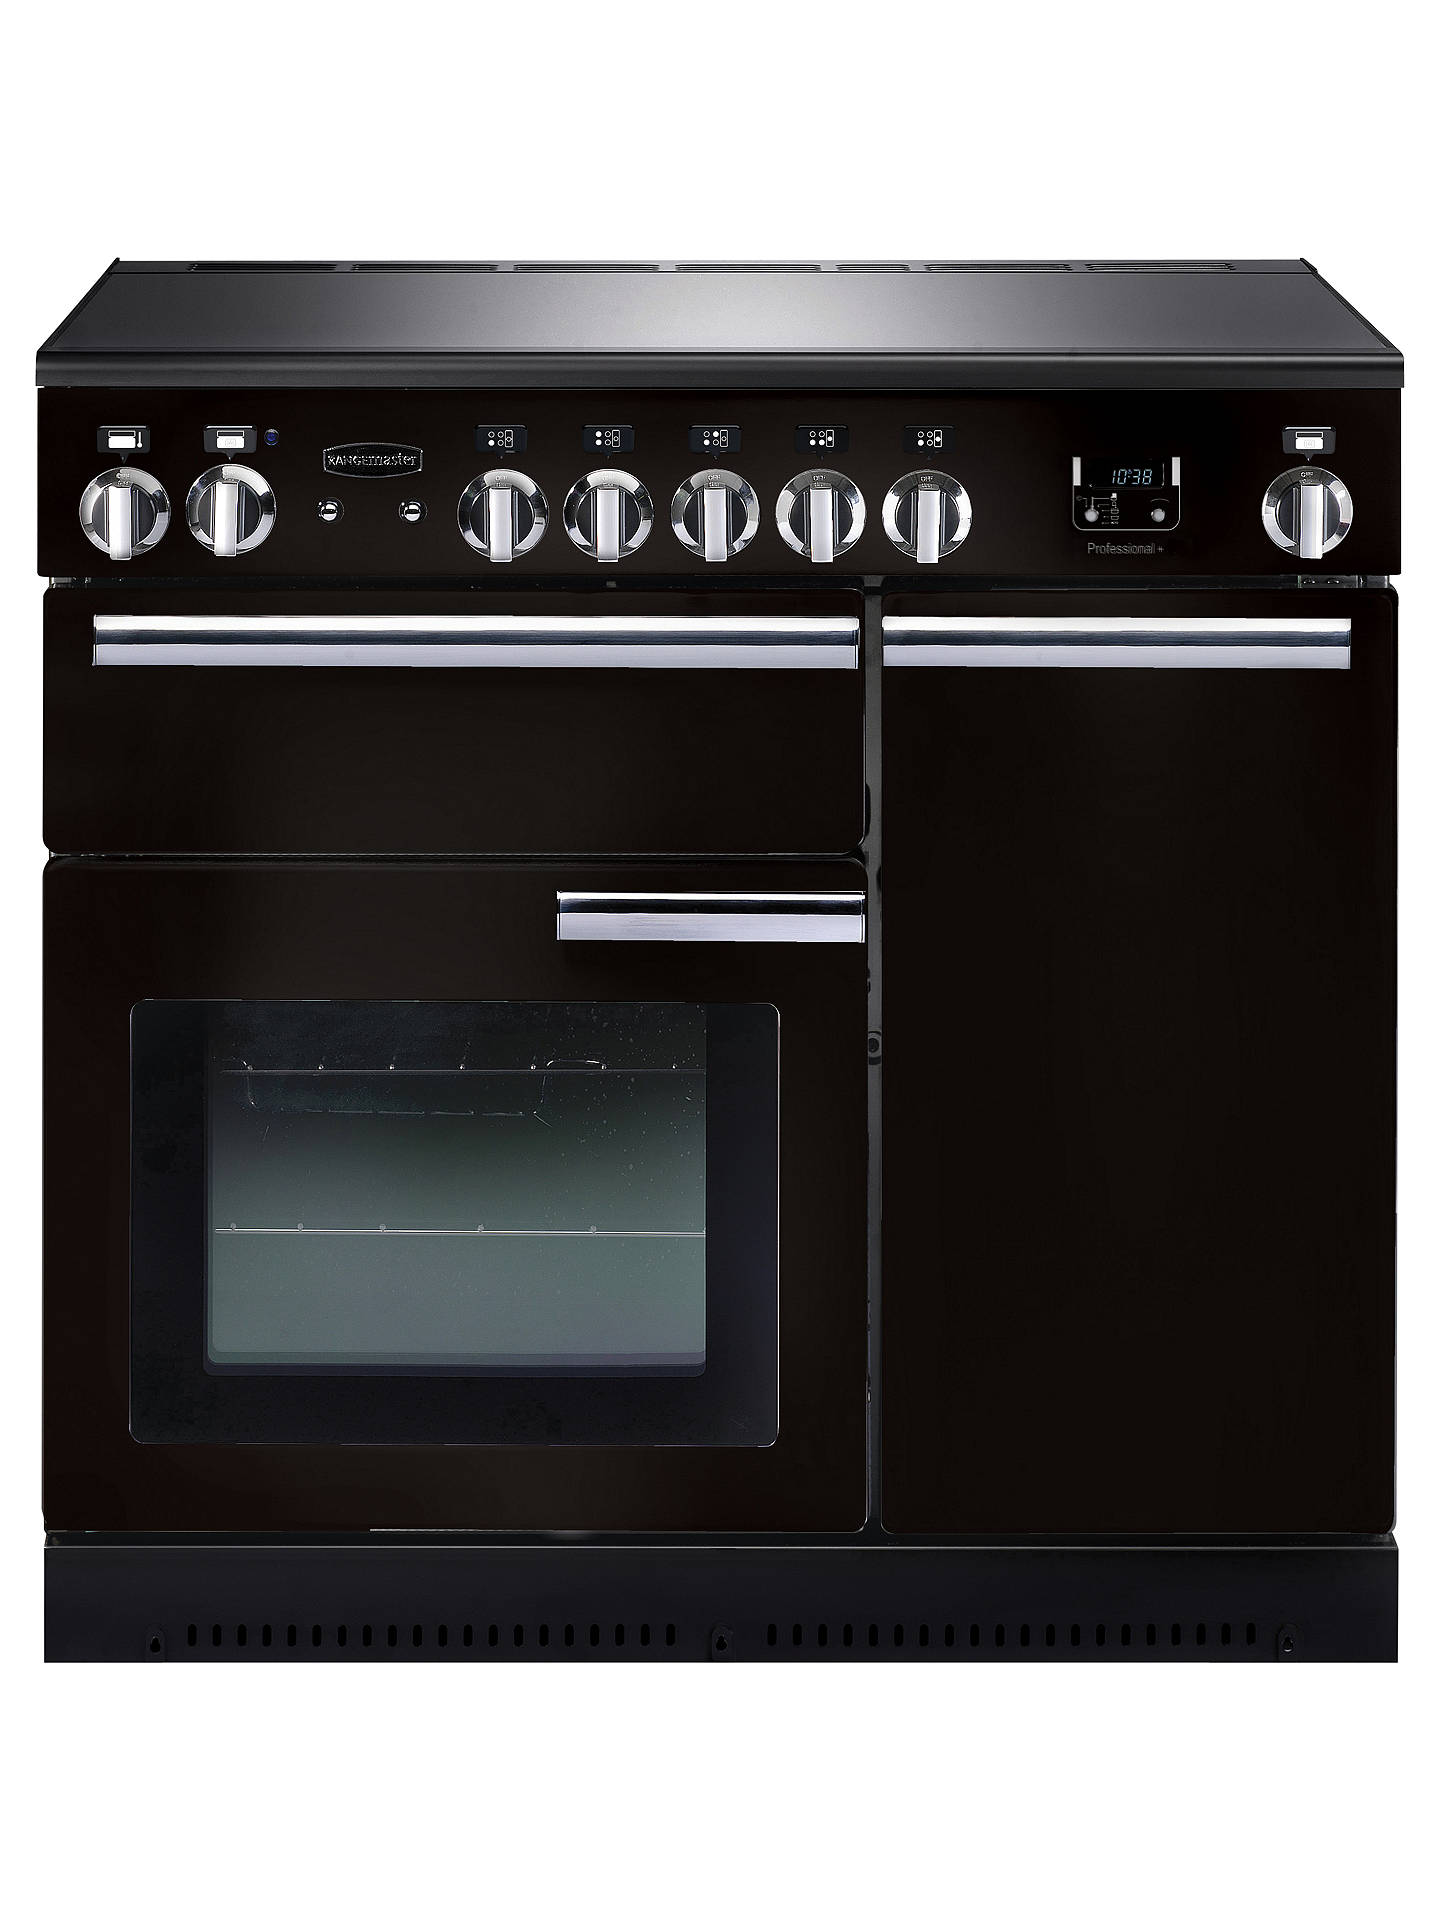 BuyRangemaster Professional + 90 Electric Range Cooker, Black/Chrome Trim Online at johnlewis.com